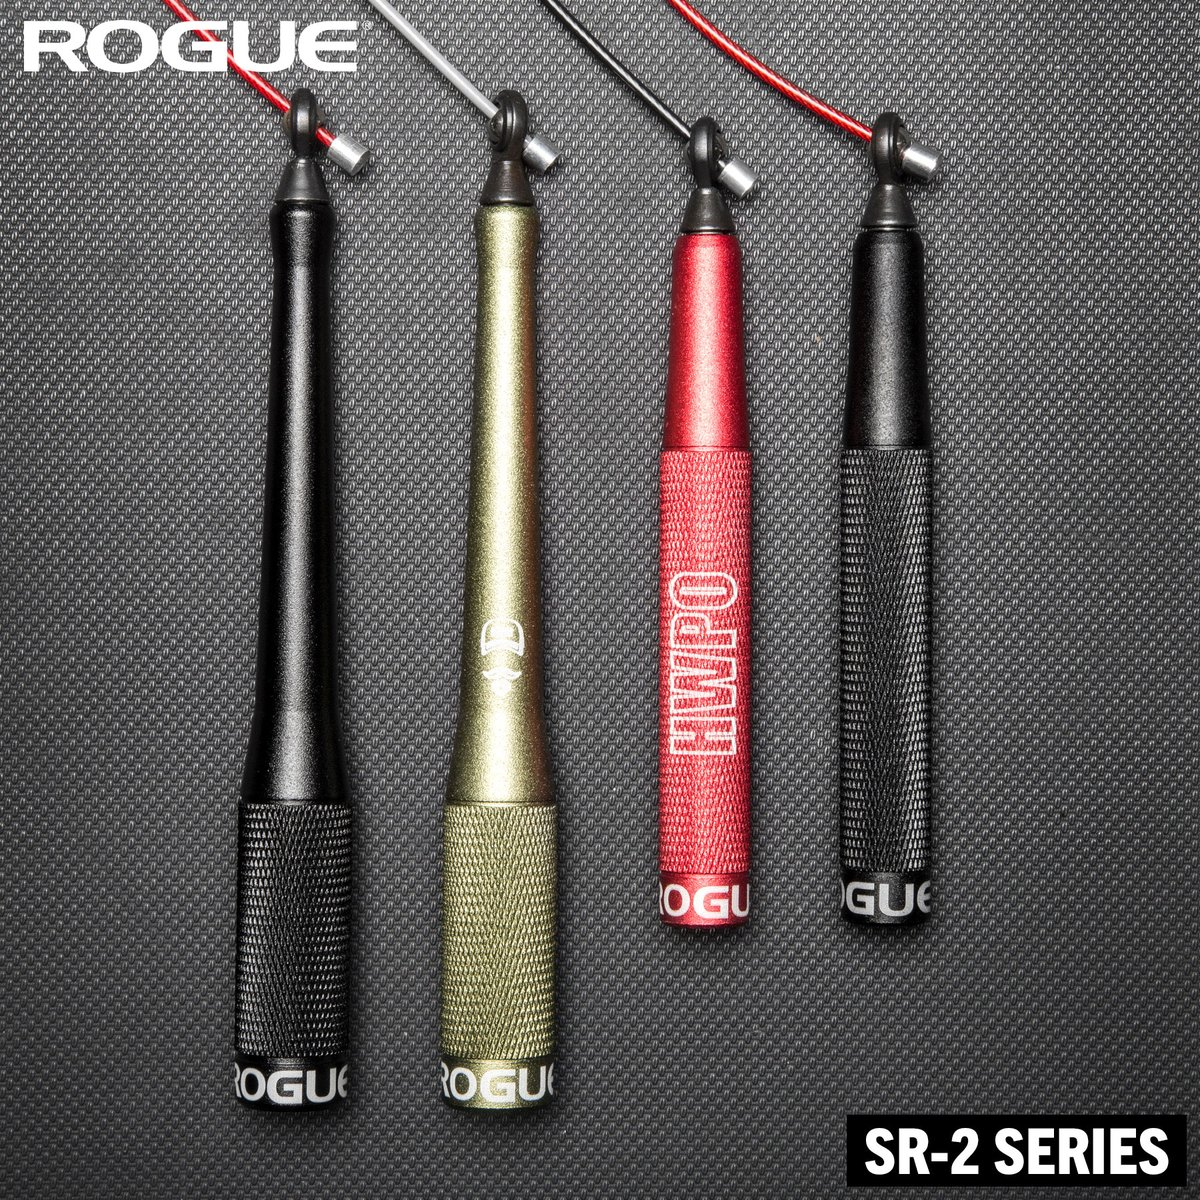 Aluminum construction, knurled handles, ball bearing swivel design, and made in the USA. For a smooth spin and blazing speed, an SR-2 rope is the rope for you.   Shop speed ropes: